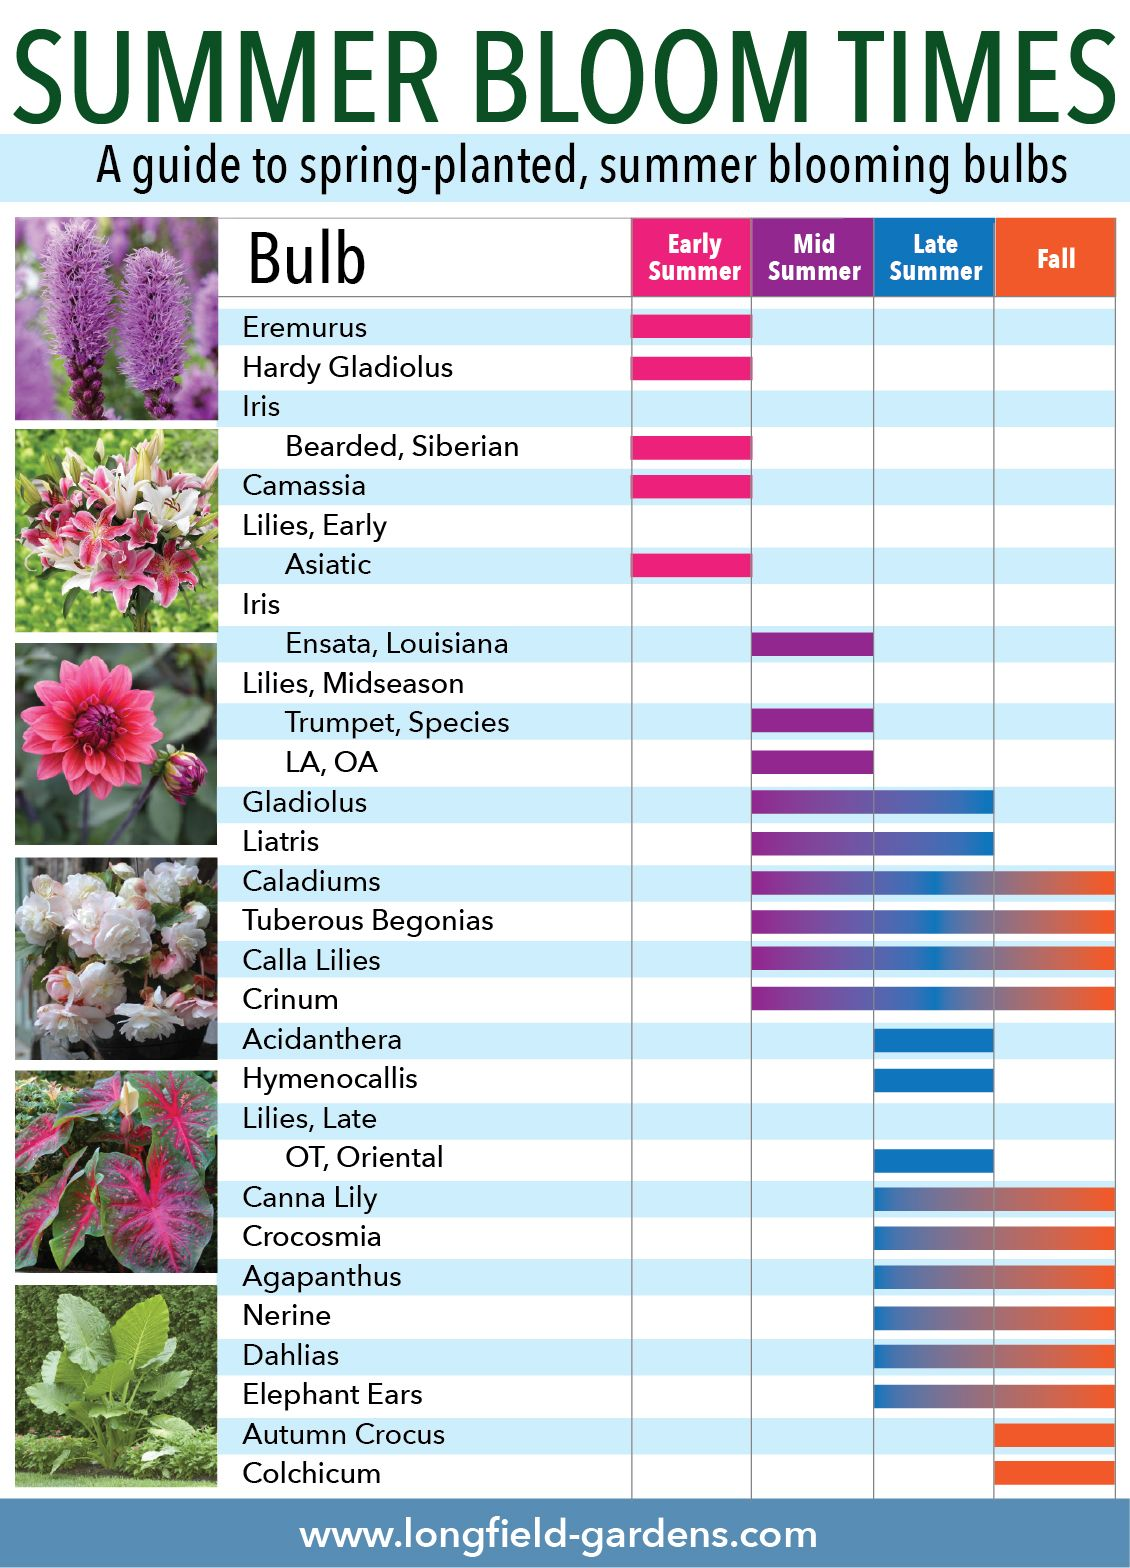 Flower Bulbs Make It Easy To Fill Your Yard And Garden With Color From Early Spring Through Fall By Choosing Bulbs Tha Summer Bulbs Bulb Flowers Spring Plants